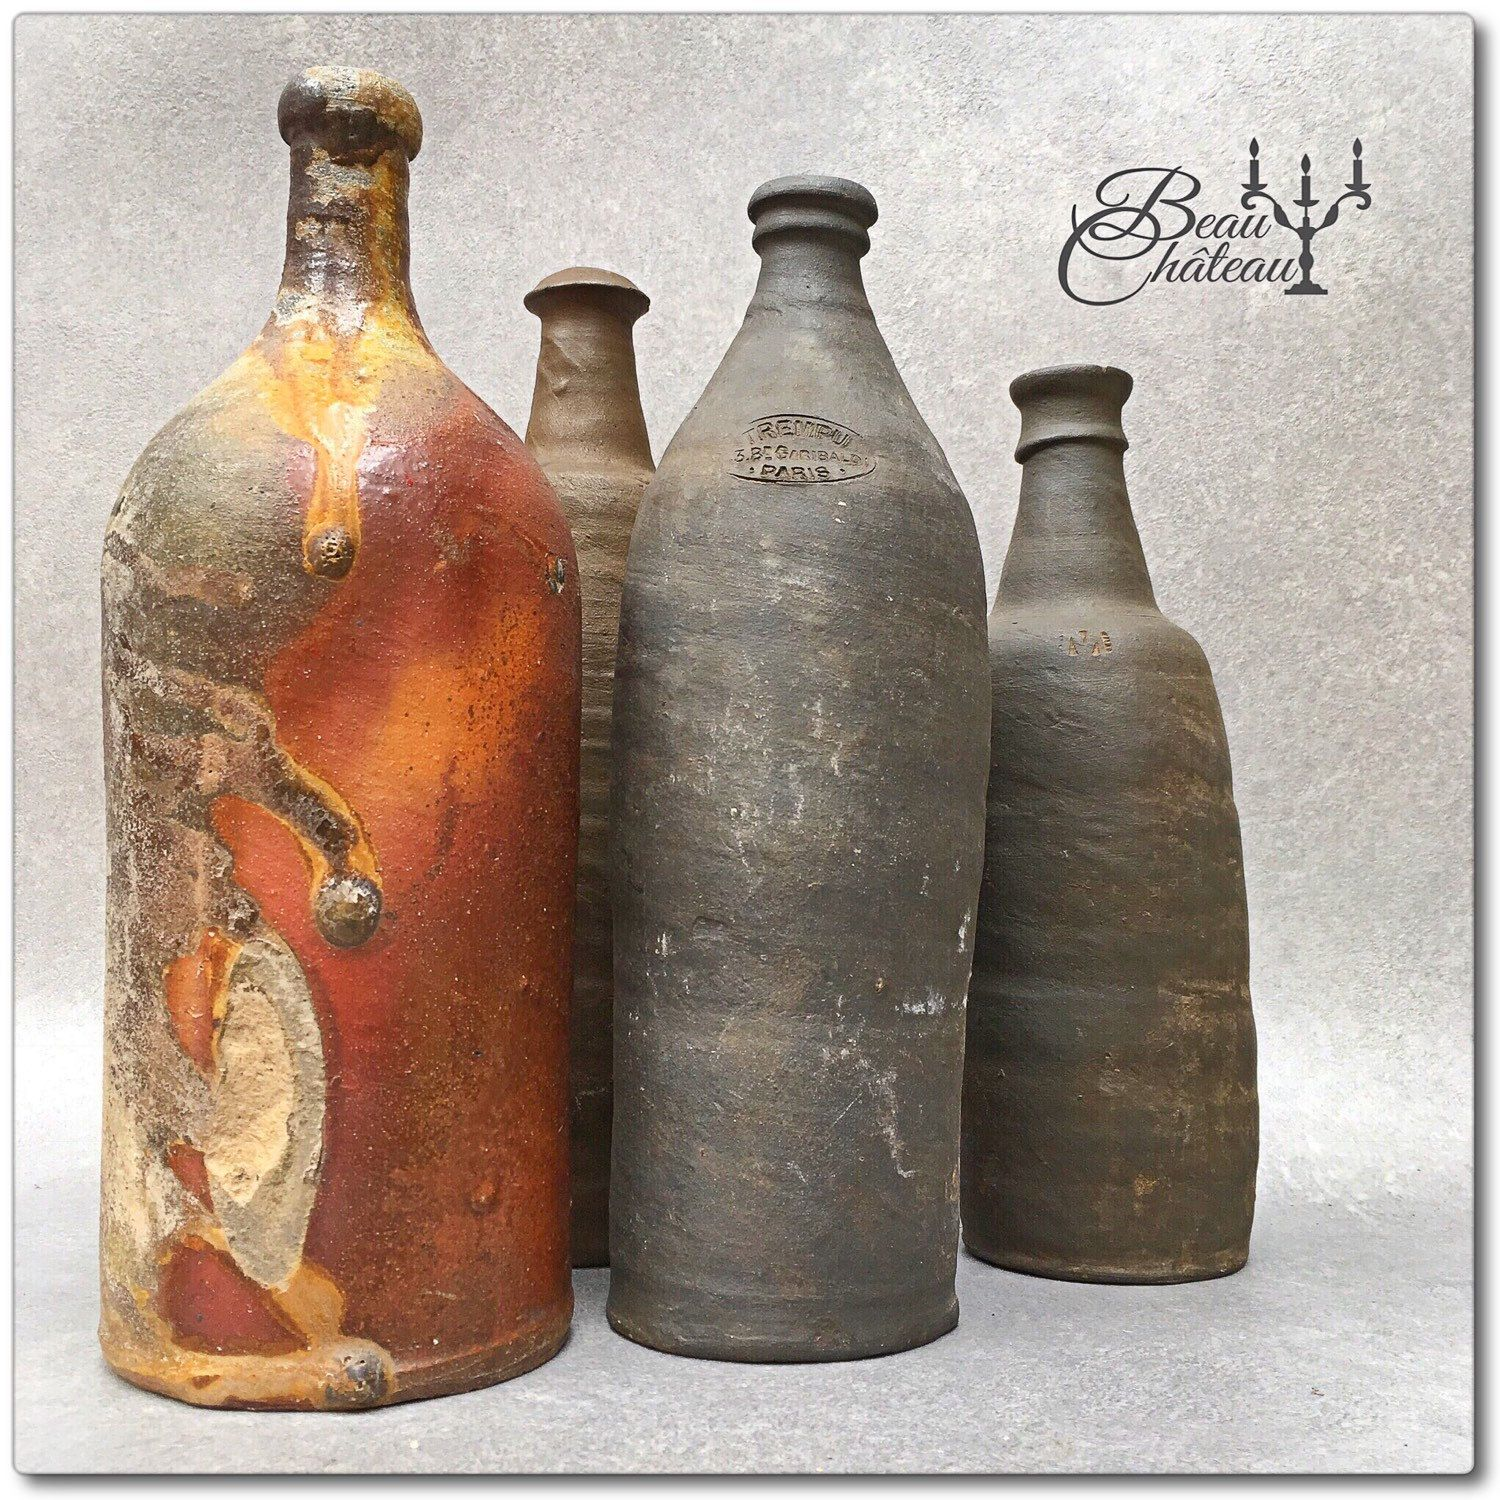 Interesting Bottles My Collection Of Ancient Primitive Stoneware Bottles From France